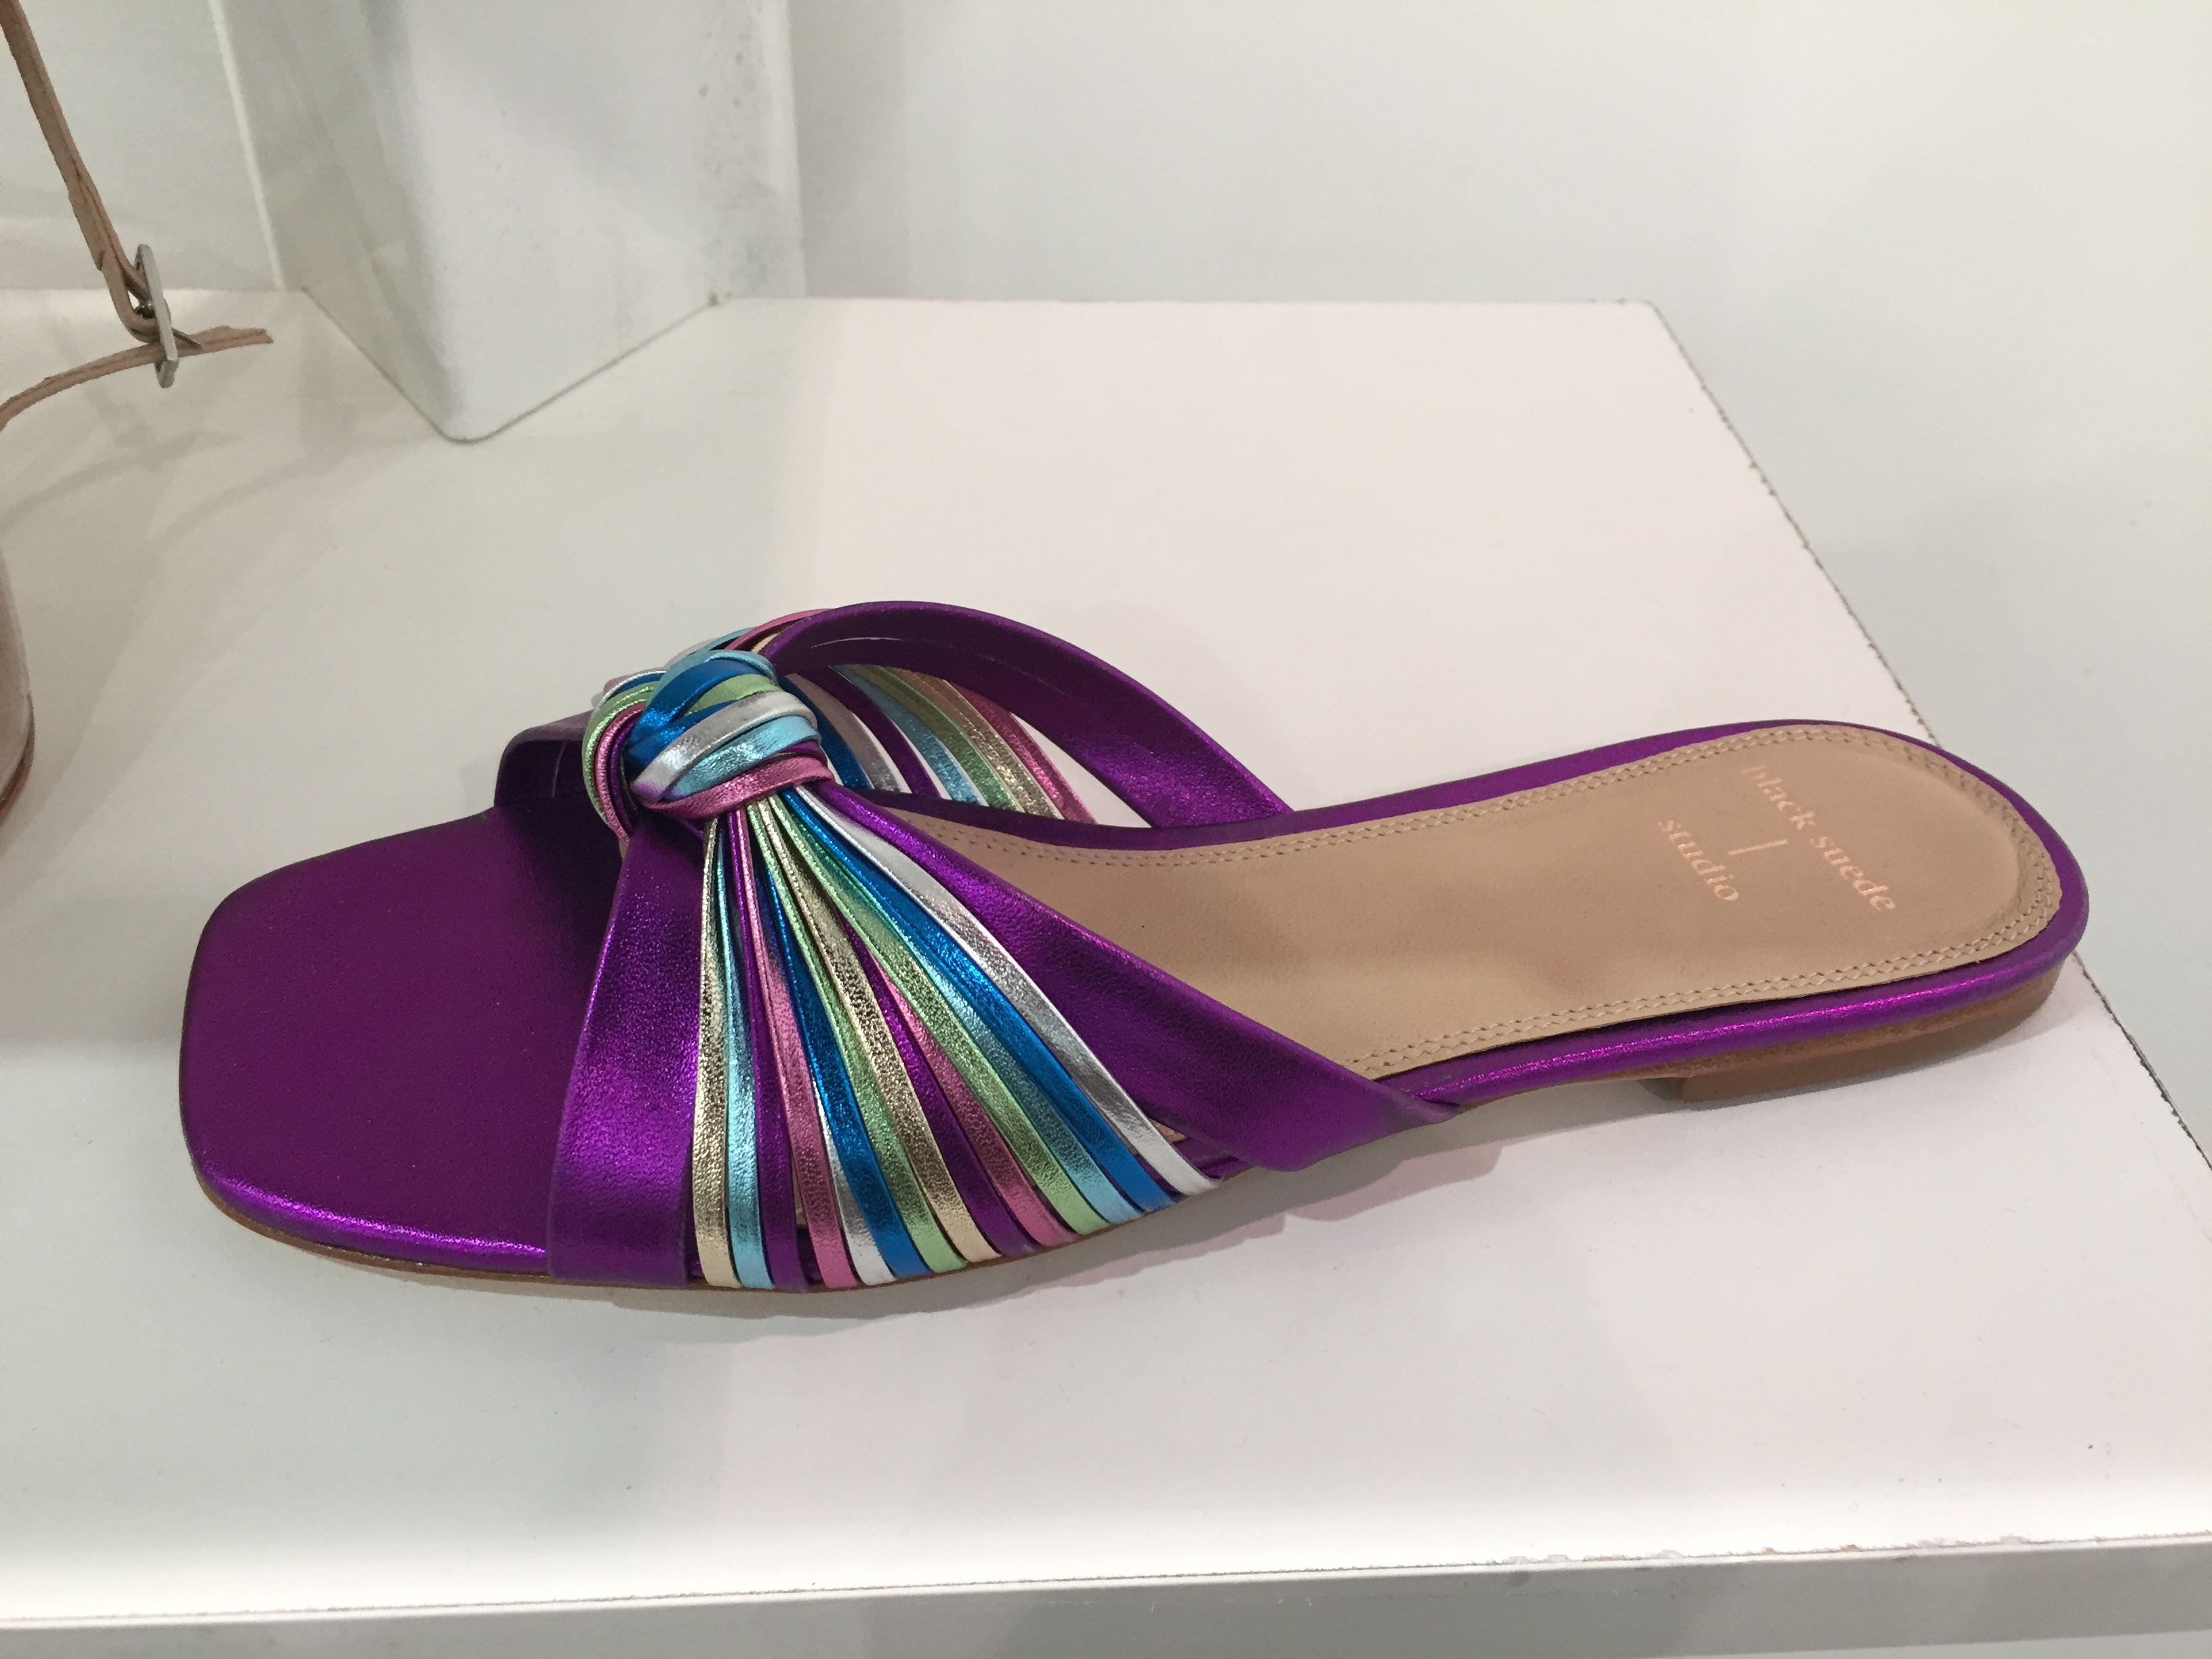 A metallic, jewel-toned slide from Black Suede.